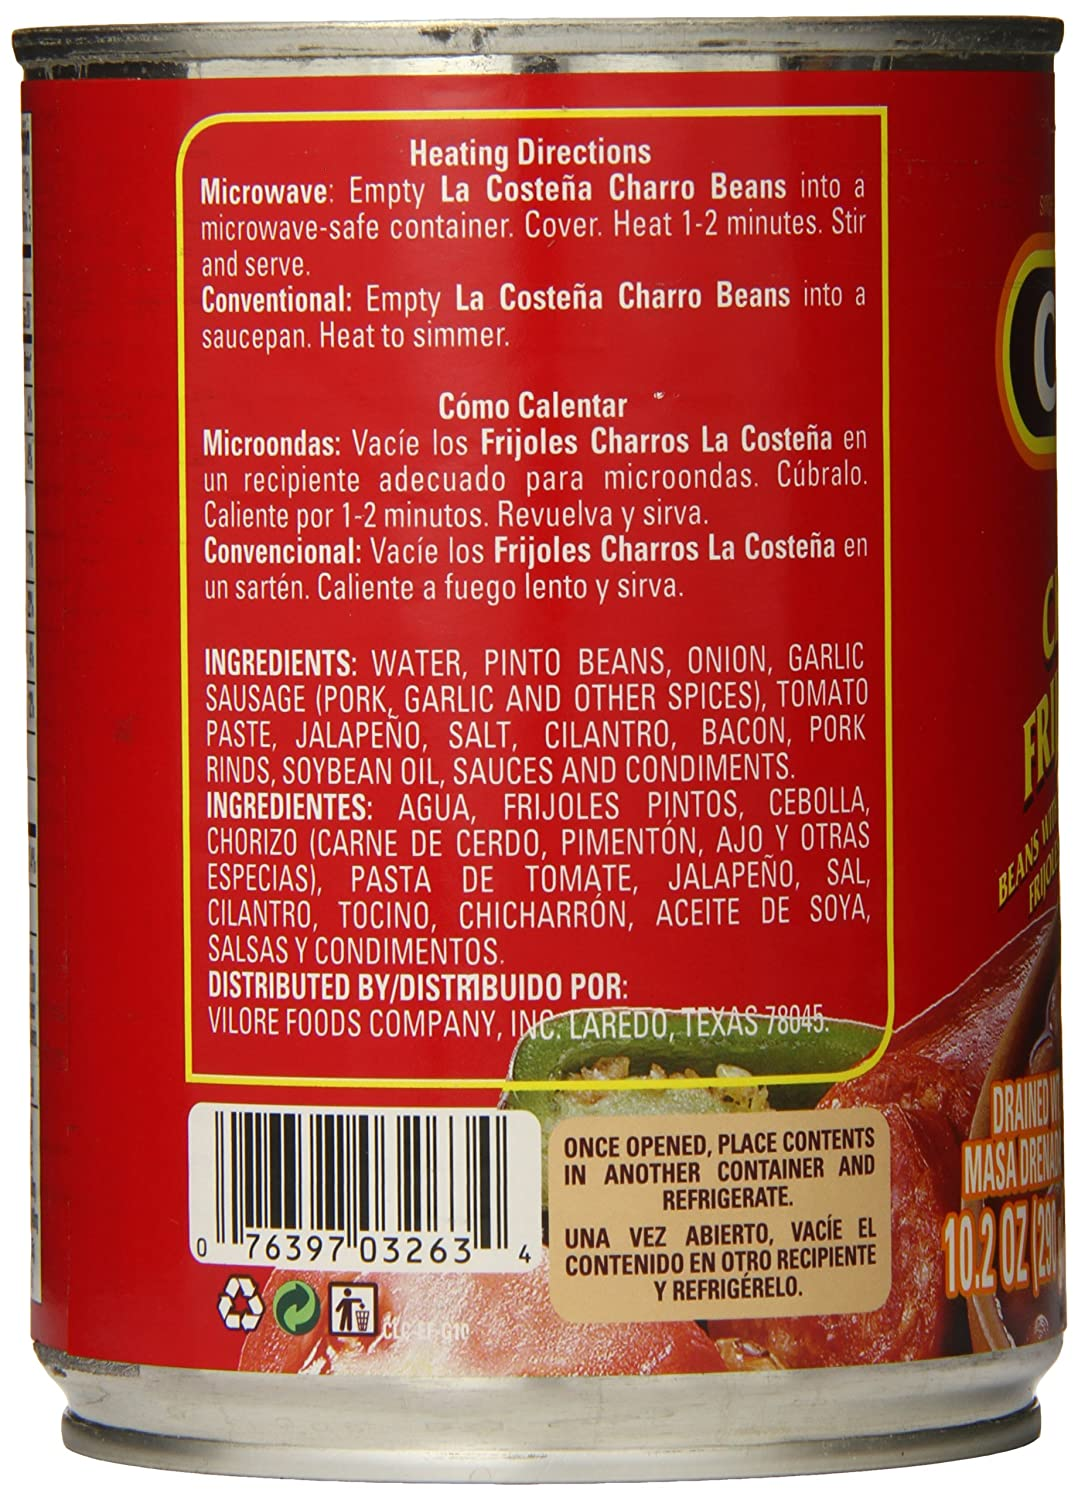 La Costena Whole Charro Beans, 19.75 Ounce (Pack of 12): Amazon.com: Grocery & Gourmet Food